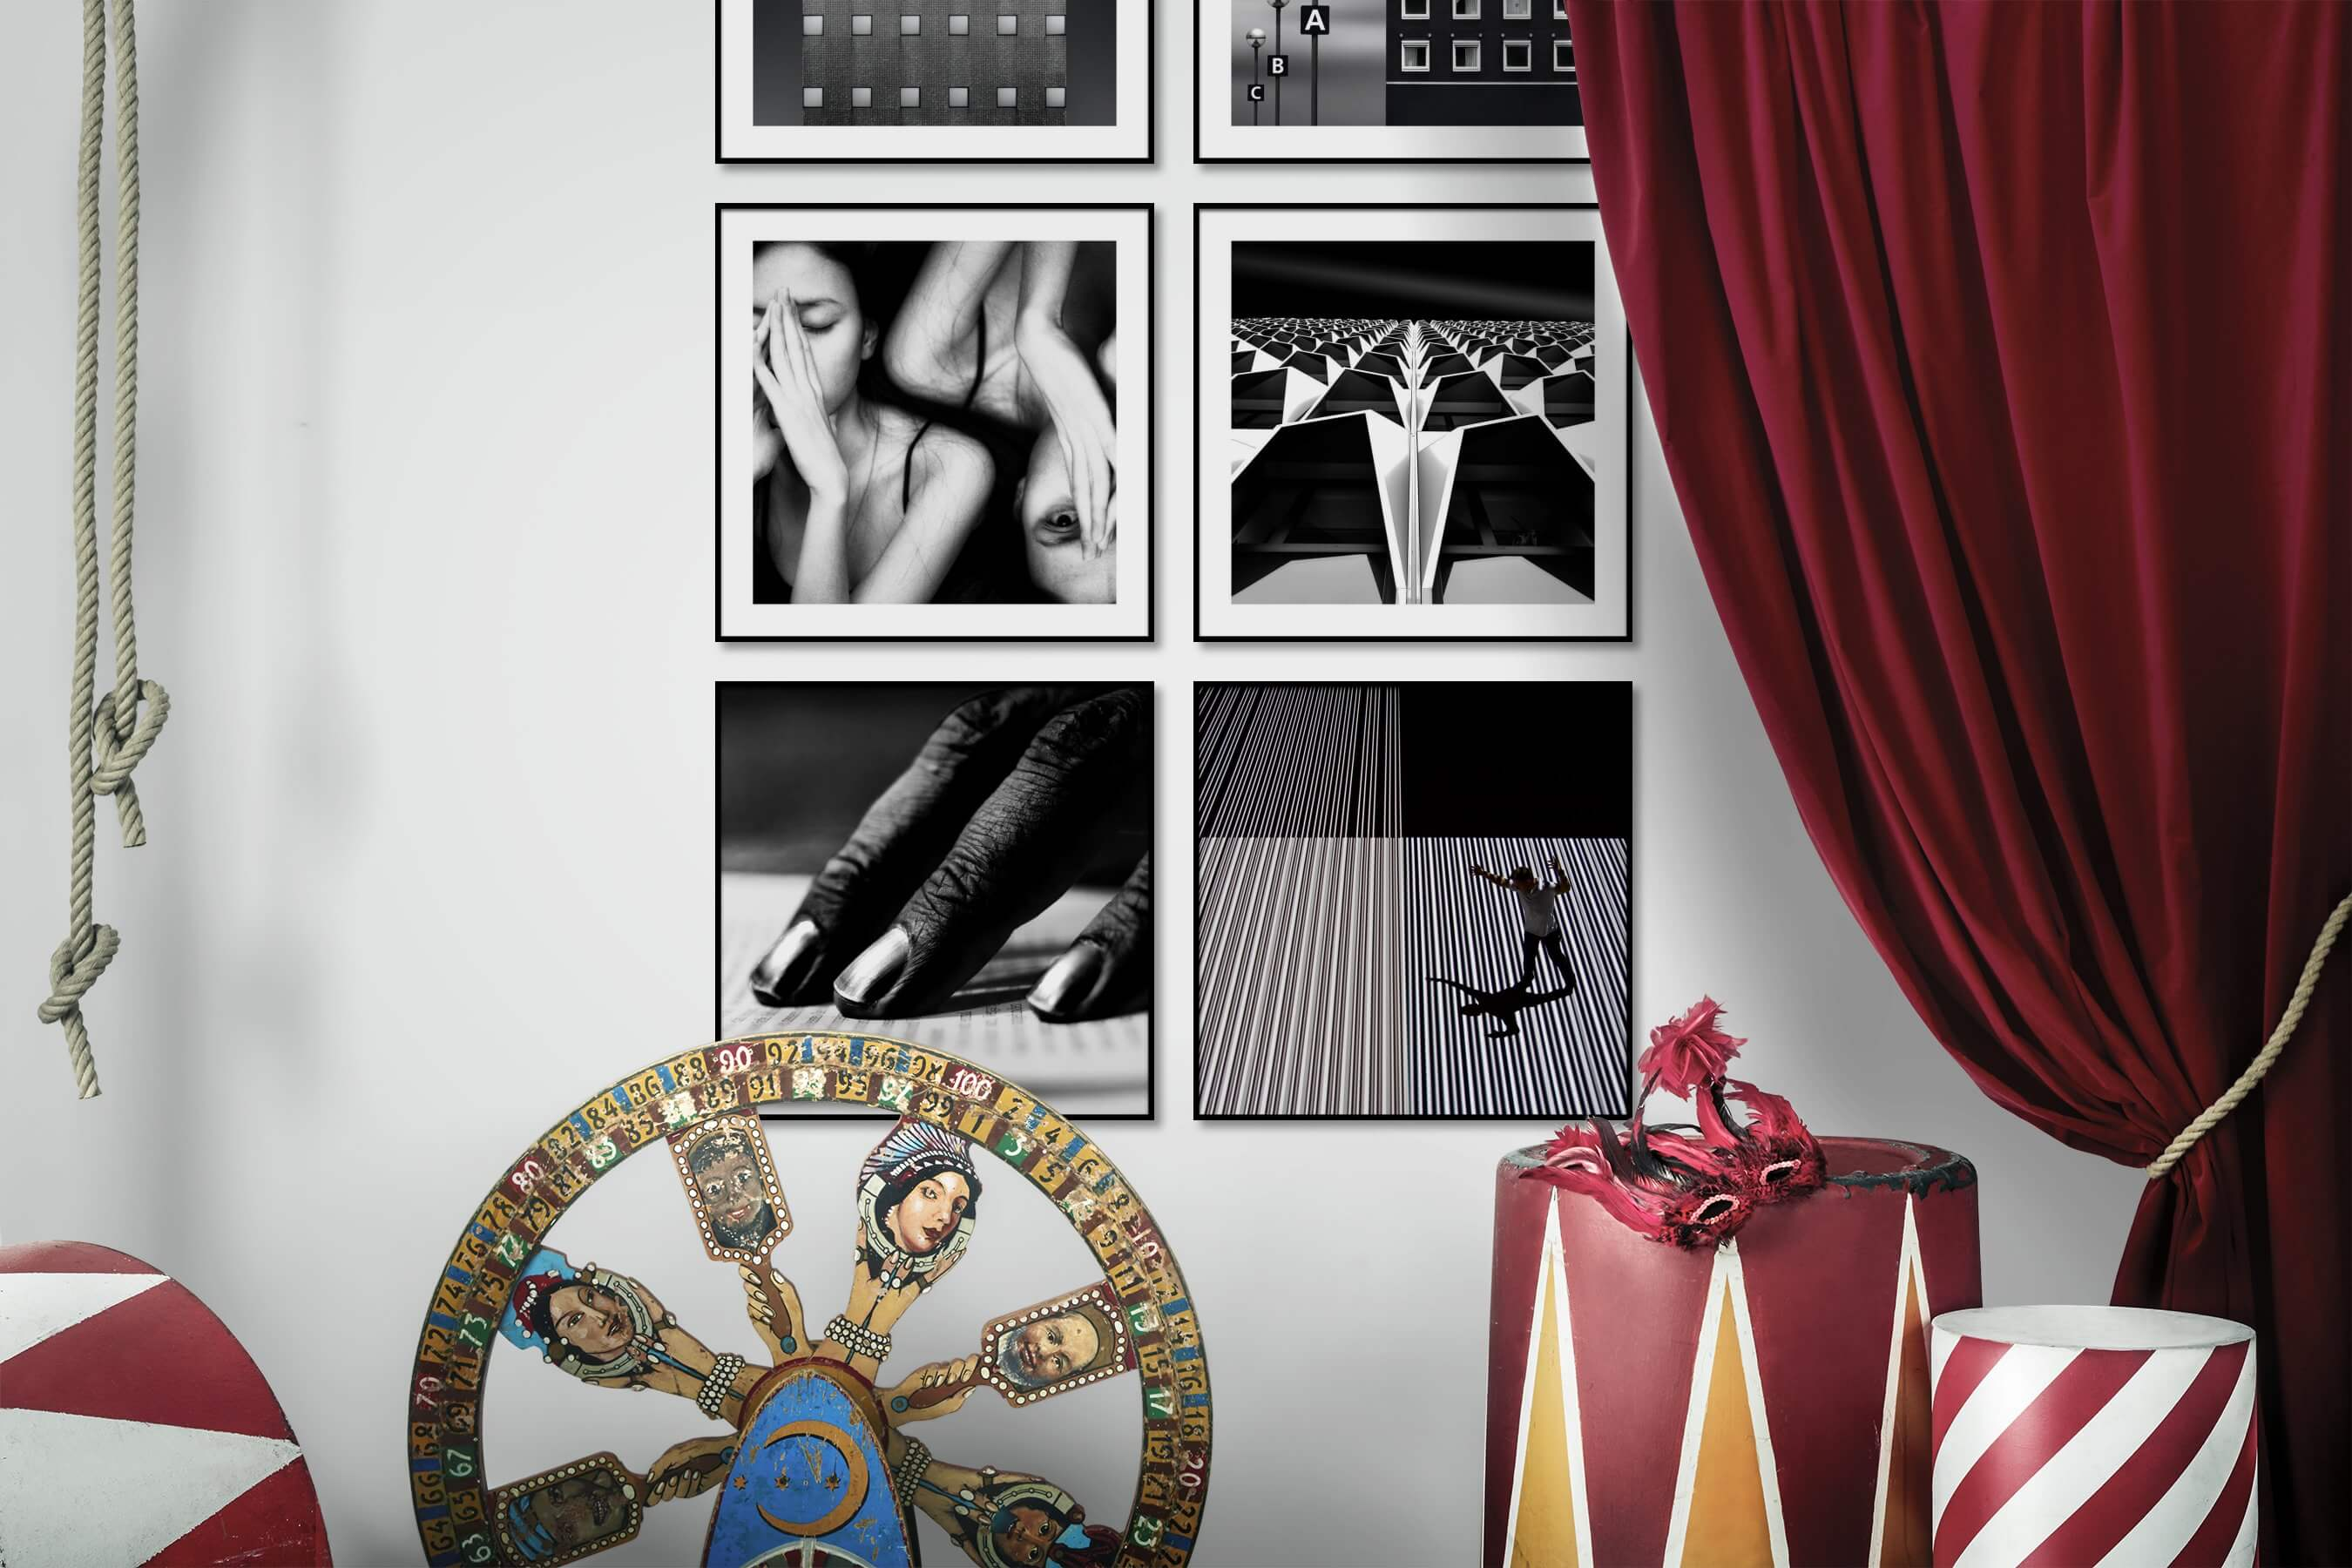 Gallery wall idea with six framed pictures arranged on a wall depicting Black & White, For the Moderate, City Life, Fashion & Beauty, and For the Maximalist